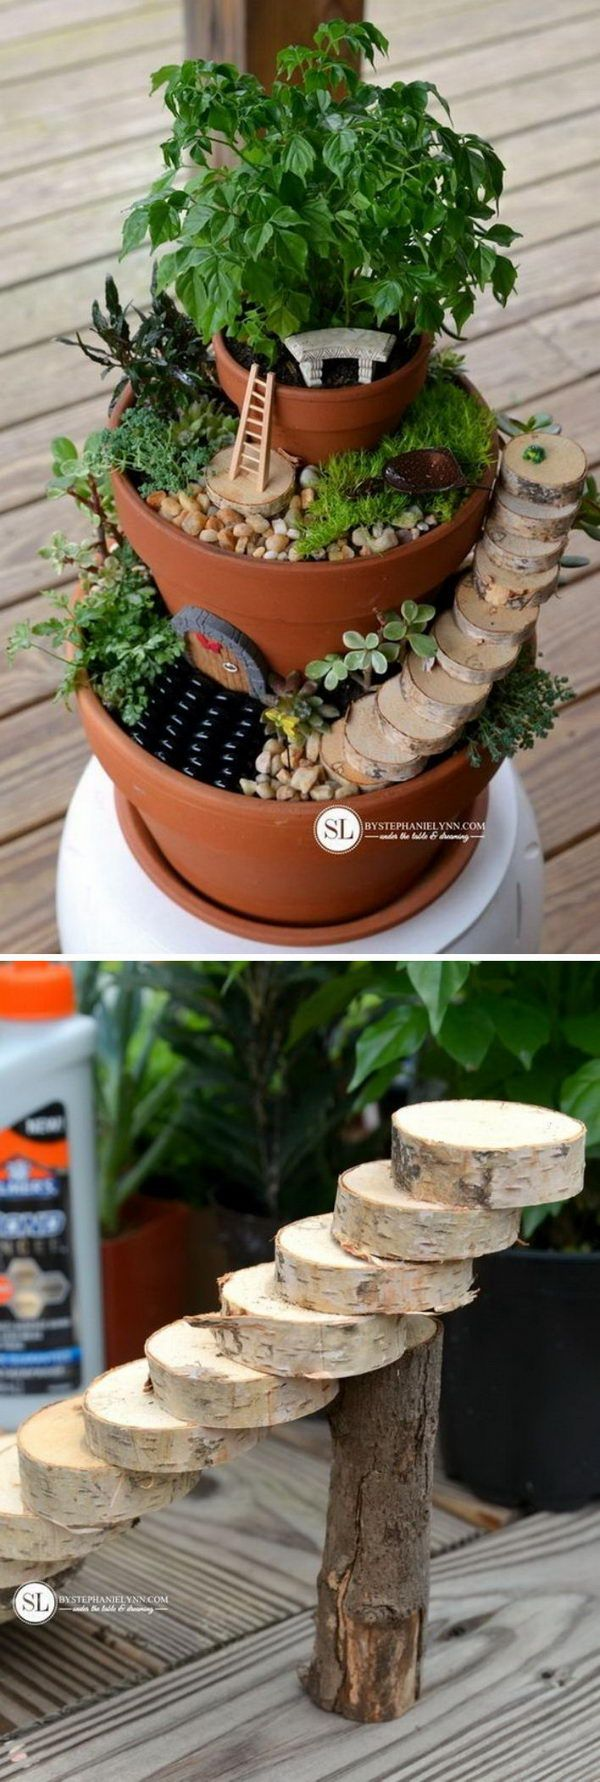 best 25+ miniature fairy gardens ideas on pinterest | diy fairy